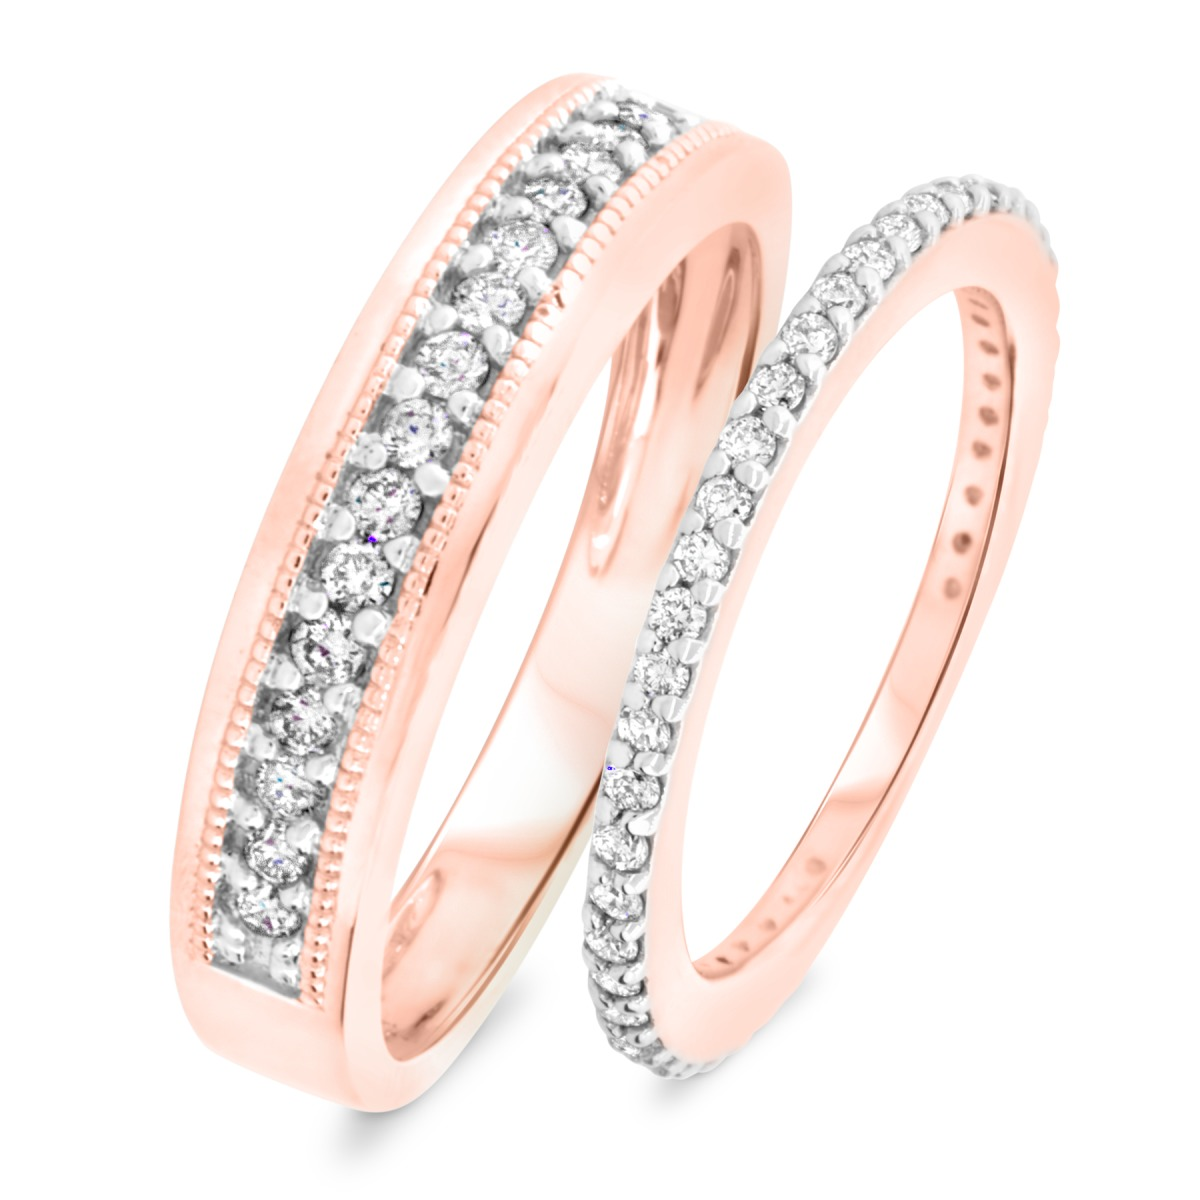 2/3 Carat T.W. Round Cut Diamond His and Hers Wedding Band Set 14K Rose Gold